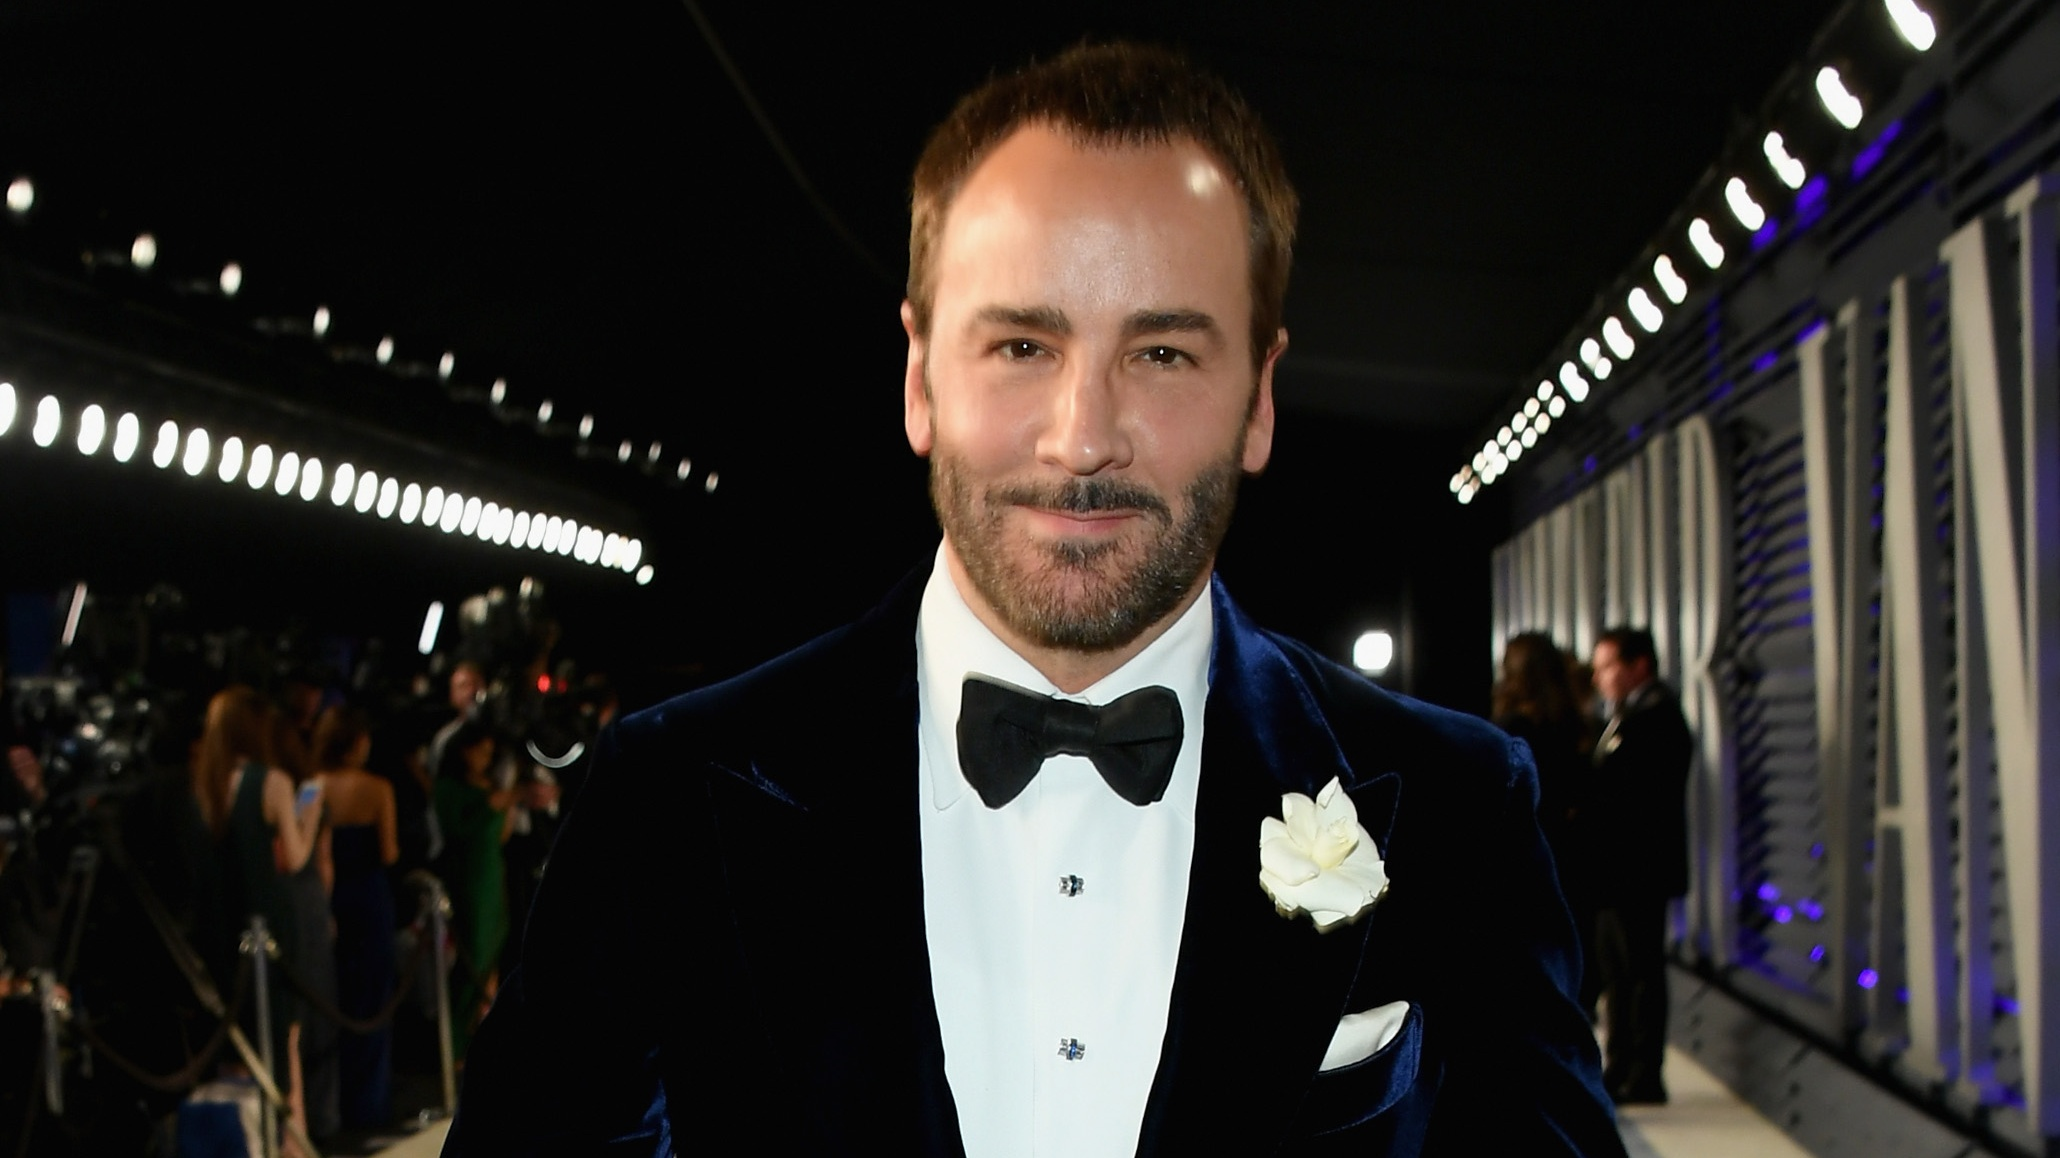 The Unfortunate Timing Of A Quote Attributed To Newly-Appointed CFDA Chairman Tom Ford